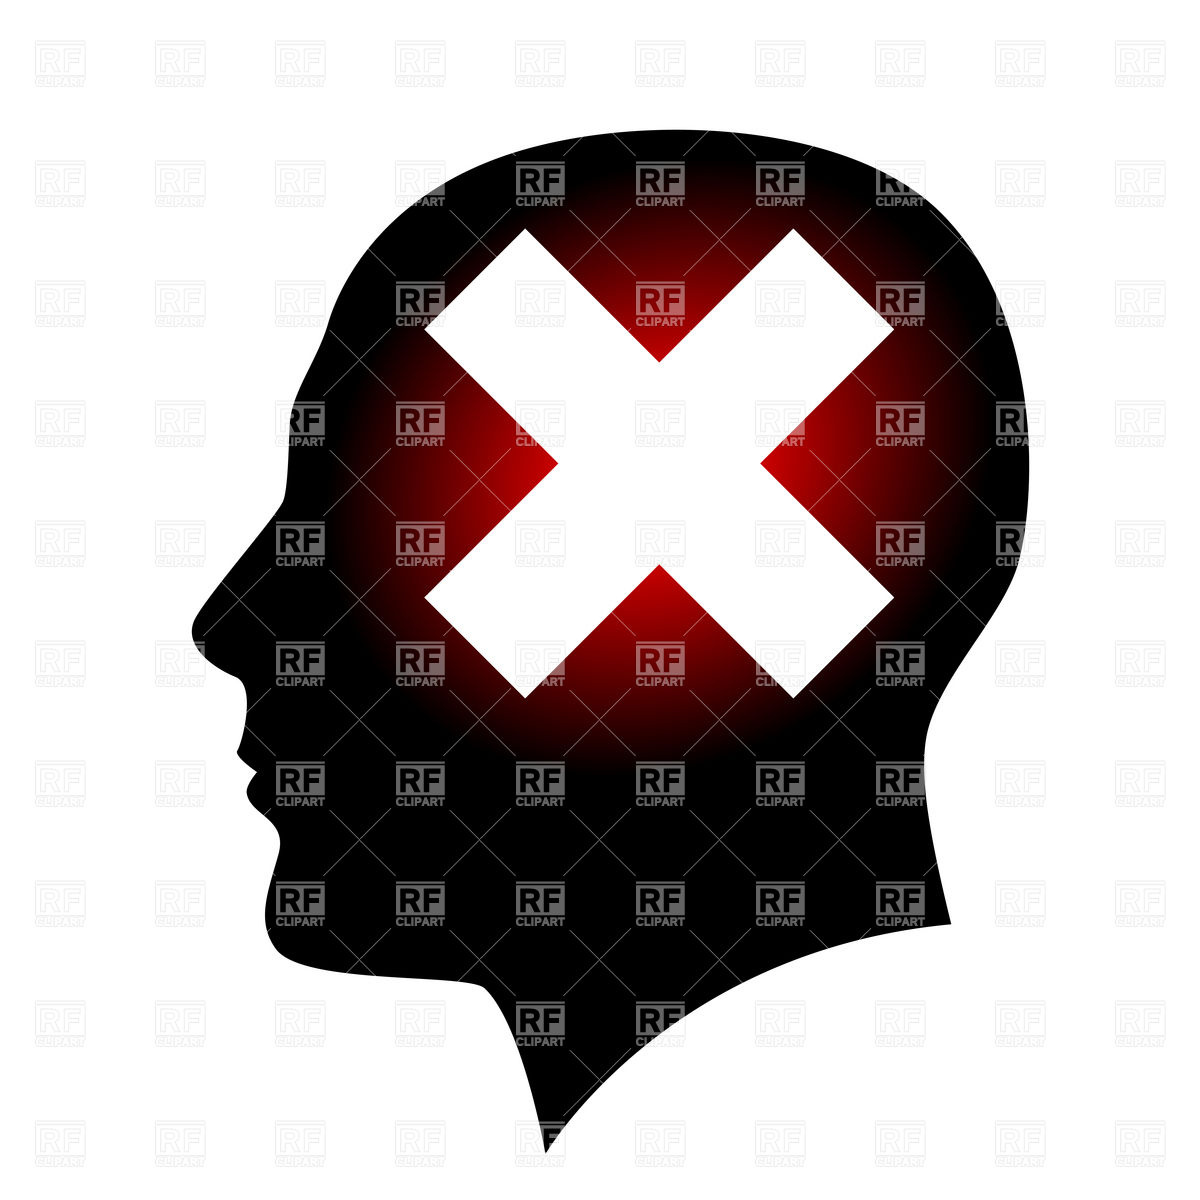 1200x1200 Silhouette Of Head With Cross Sign